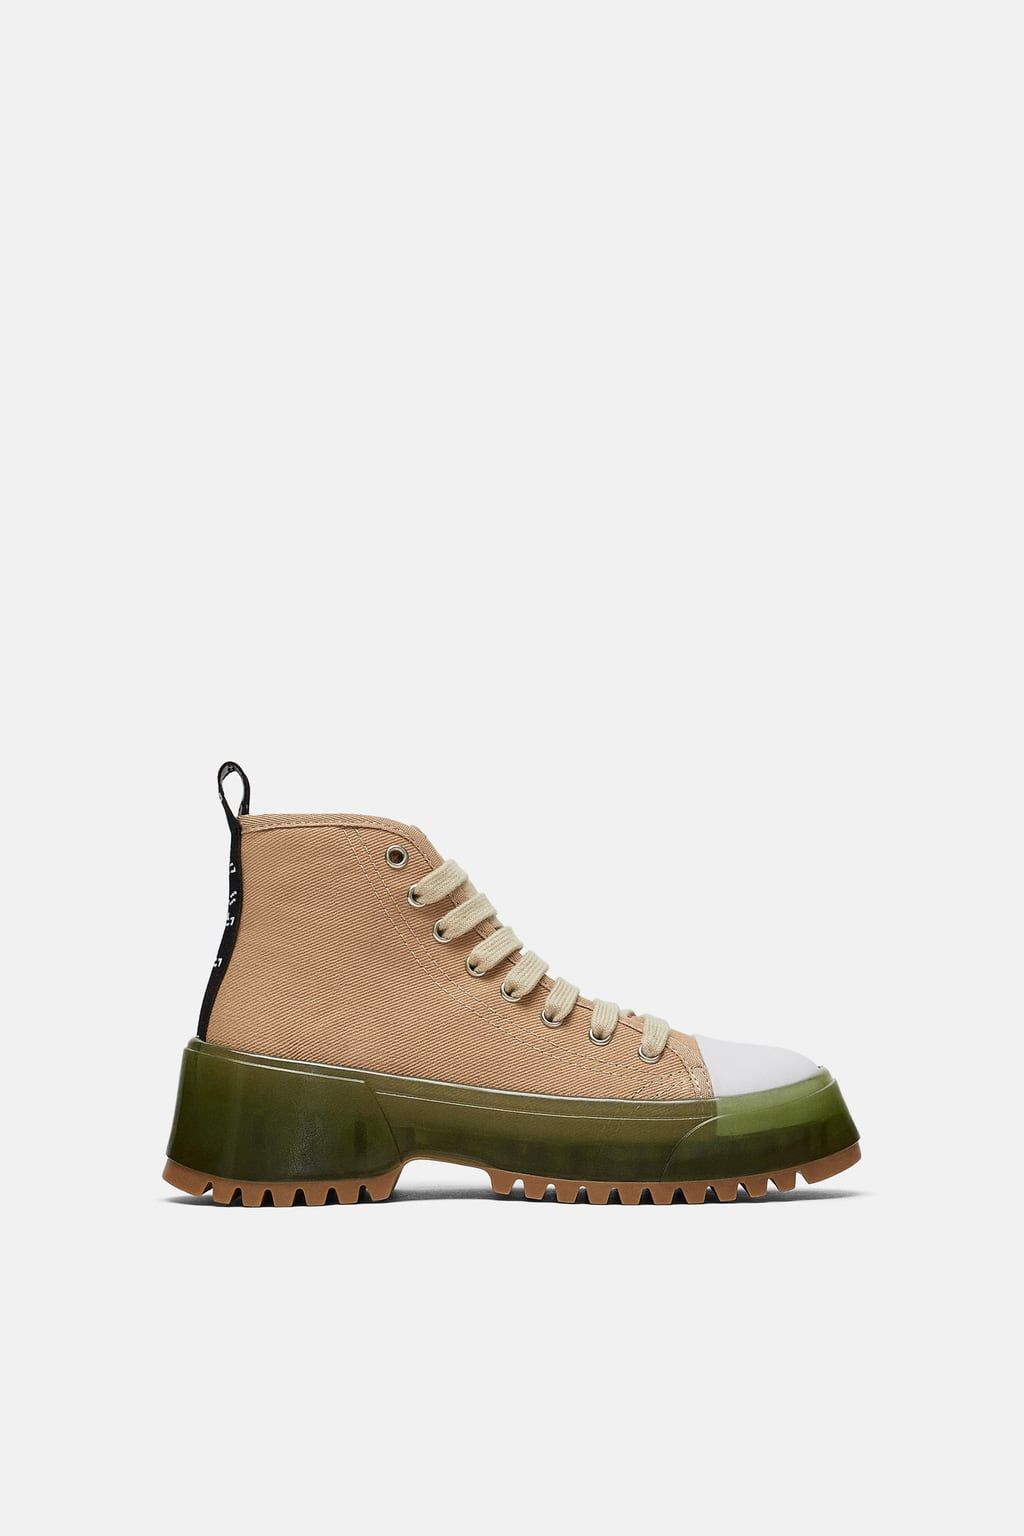 Fabric High Top Sneakers Shoes Trf Zara United Kingdom Palladium Boots Outfit High Top Sneakers Boots